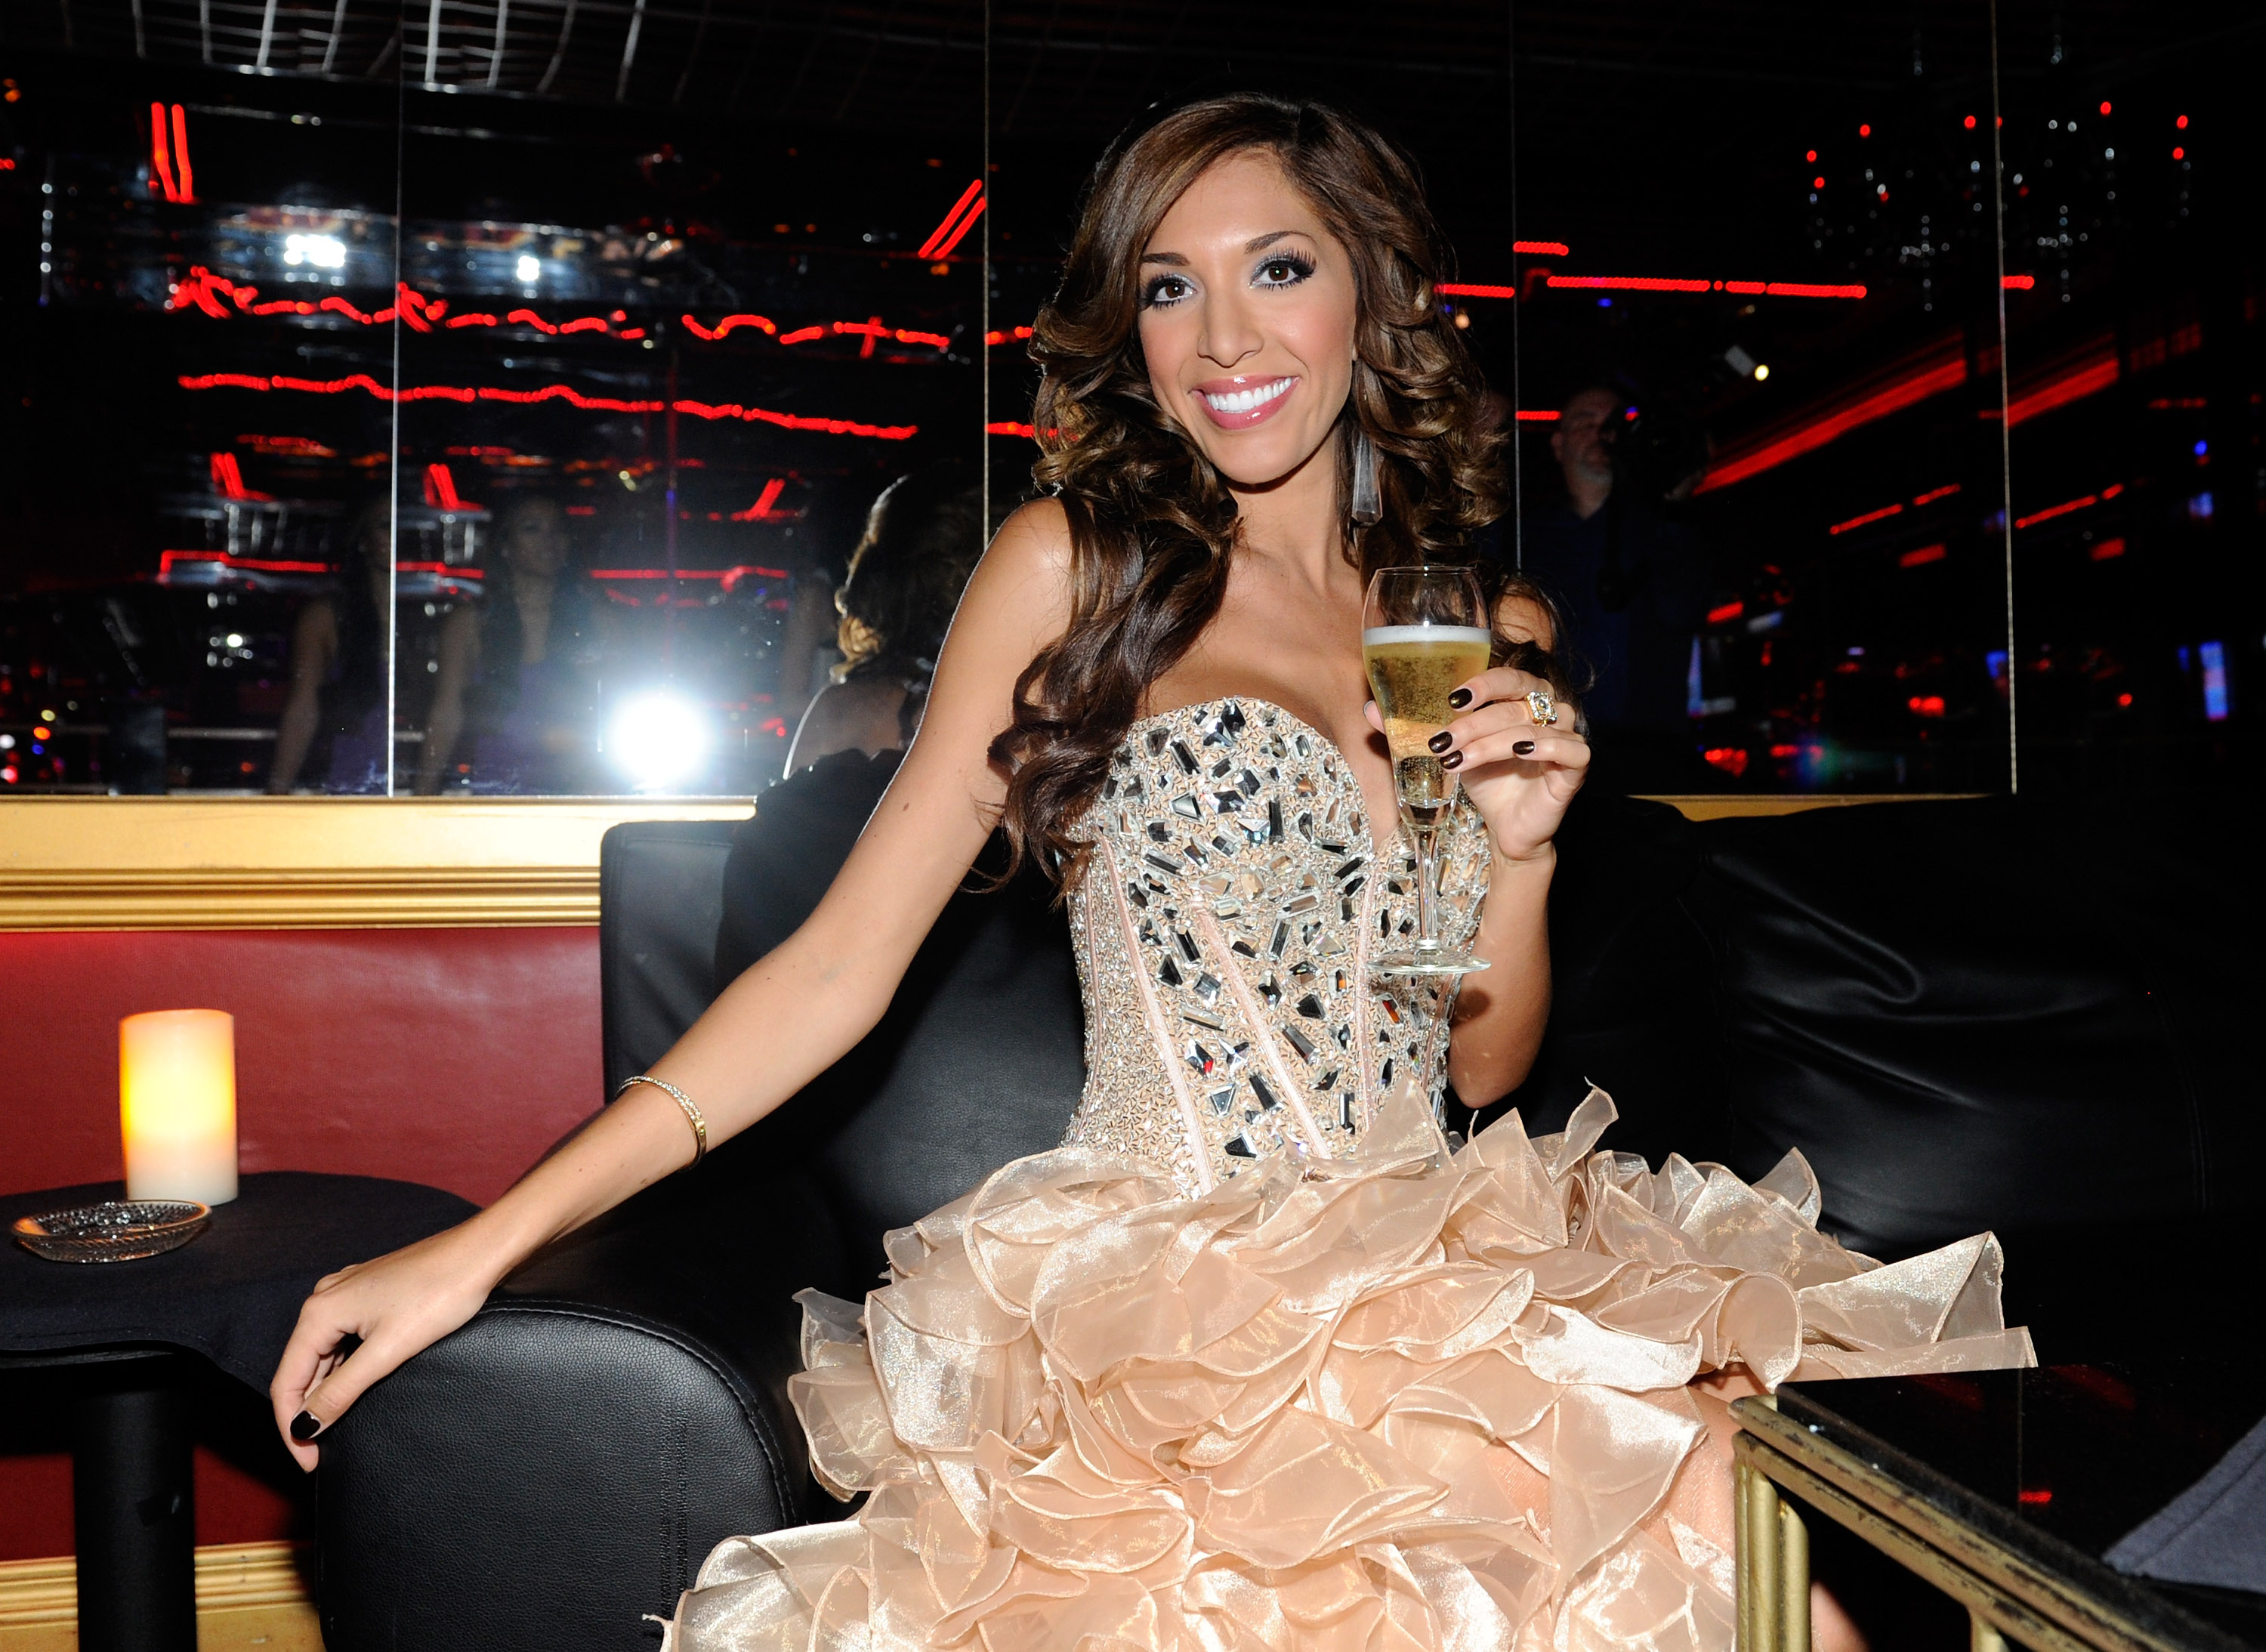 Former 'Teen Mom' star Farrah Abraham appears at the 2013 Gentlemen's Club EXPO & Tradeshow kick off party at the Crazy Horse III Gentlemen's Club on August 20, 2013 in Las Vegas, Nevada.